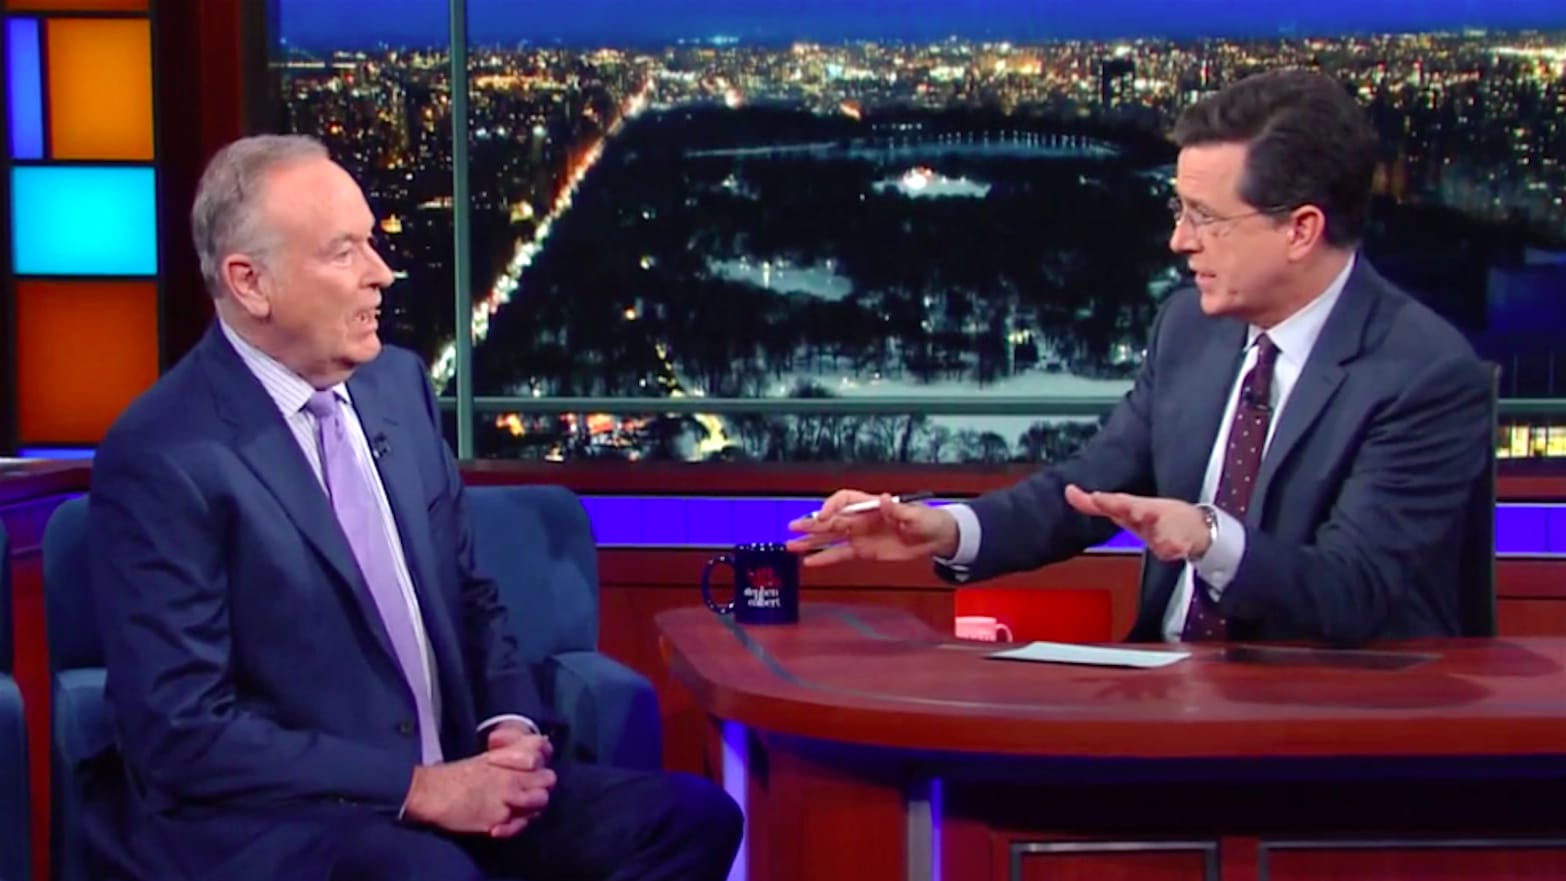 Colbert Butts Heads with Bill O'Reilly: 'Why Can't We Just Love Each Other?'